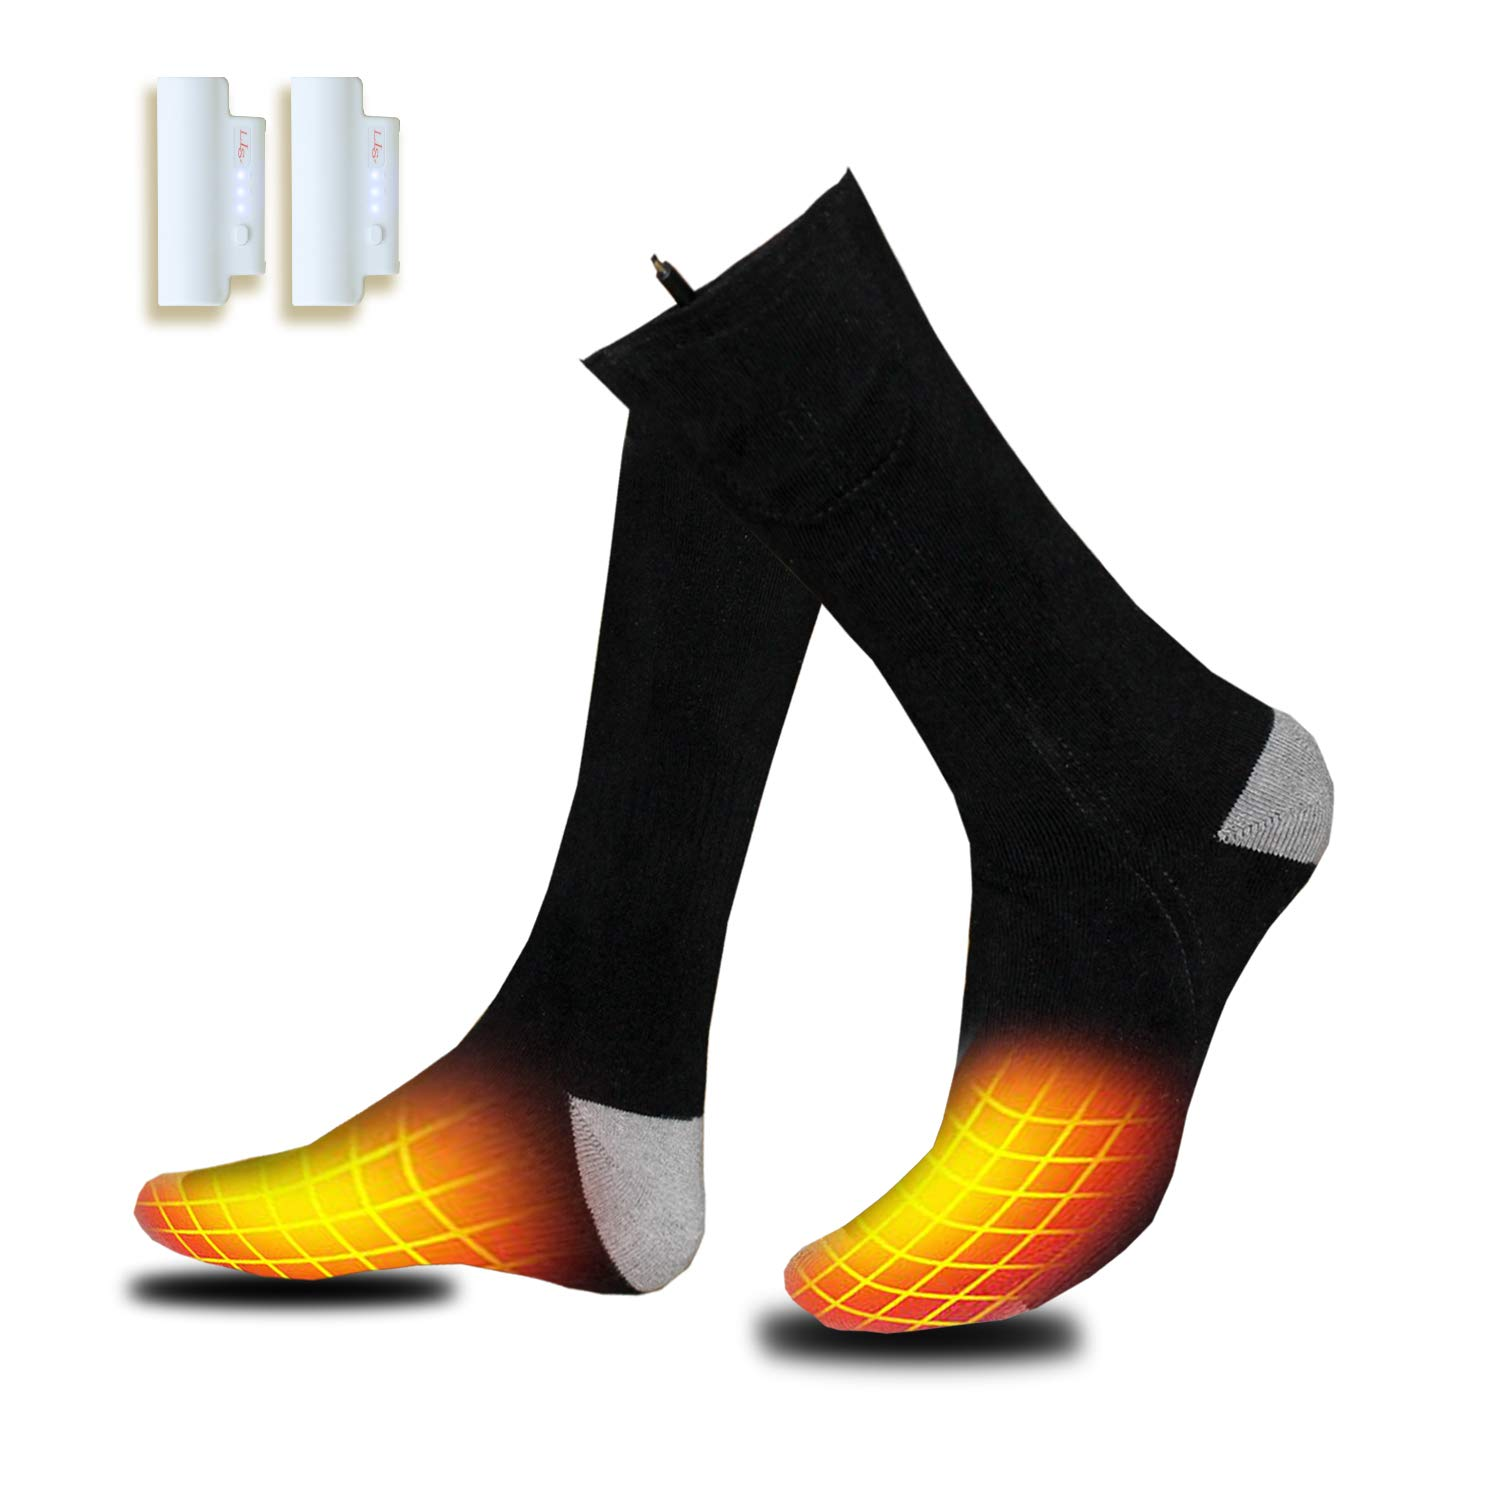 Heated Socks, Electric Footwear with Rehargeable Battery Cotton Heated Socks Keep Forefoot and Toes Warm Heating Times Last 5-9 Hours Suitable for Camping Hiking Fishing One Size Fit Most Feet by VALLEYWIND